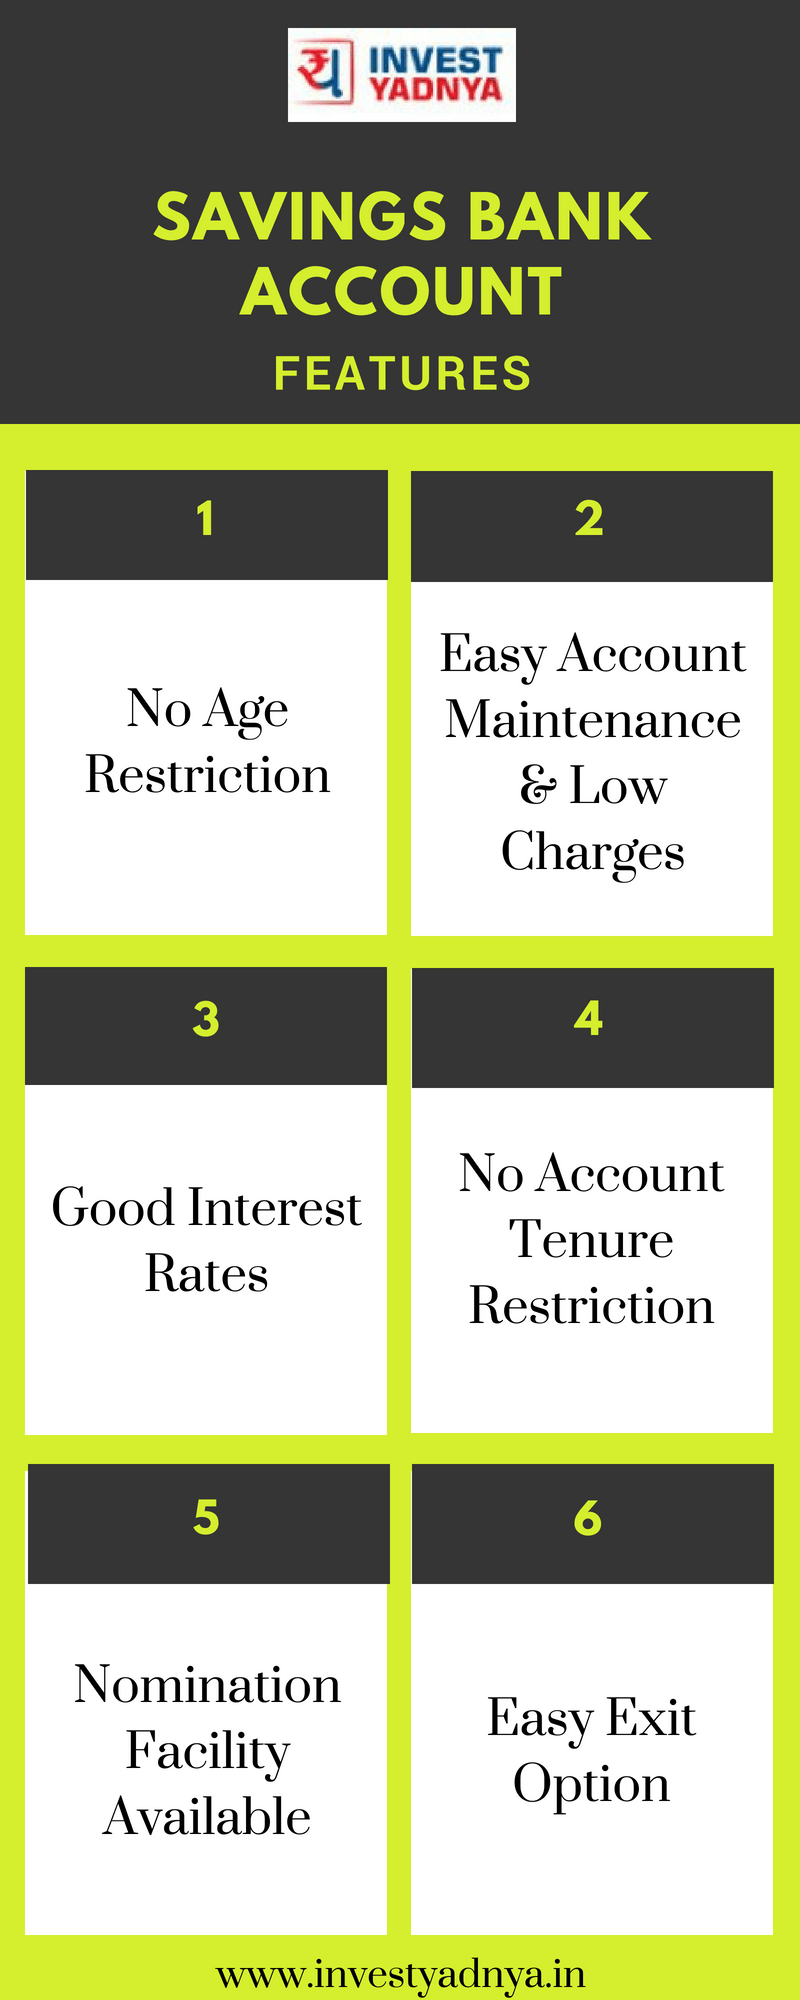 Features of savings bank account